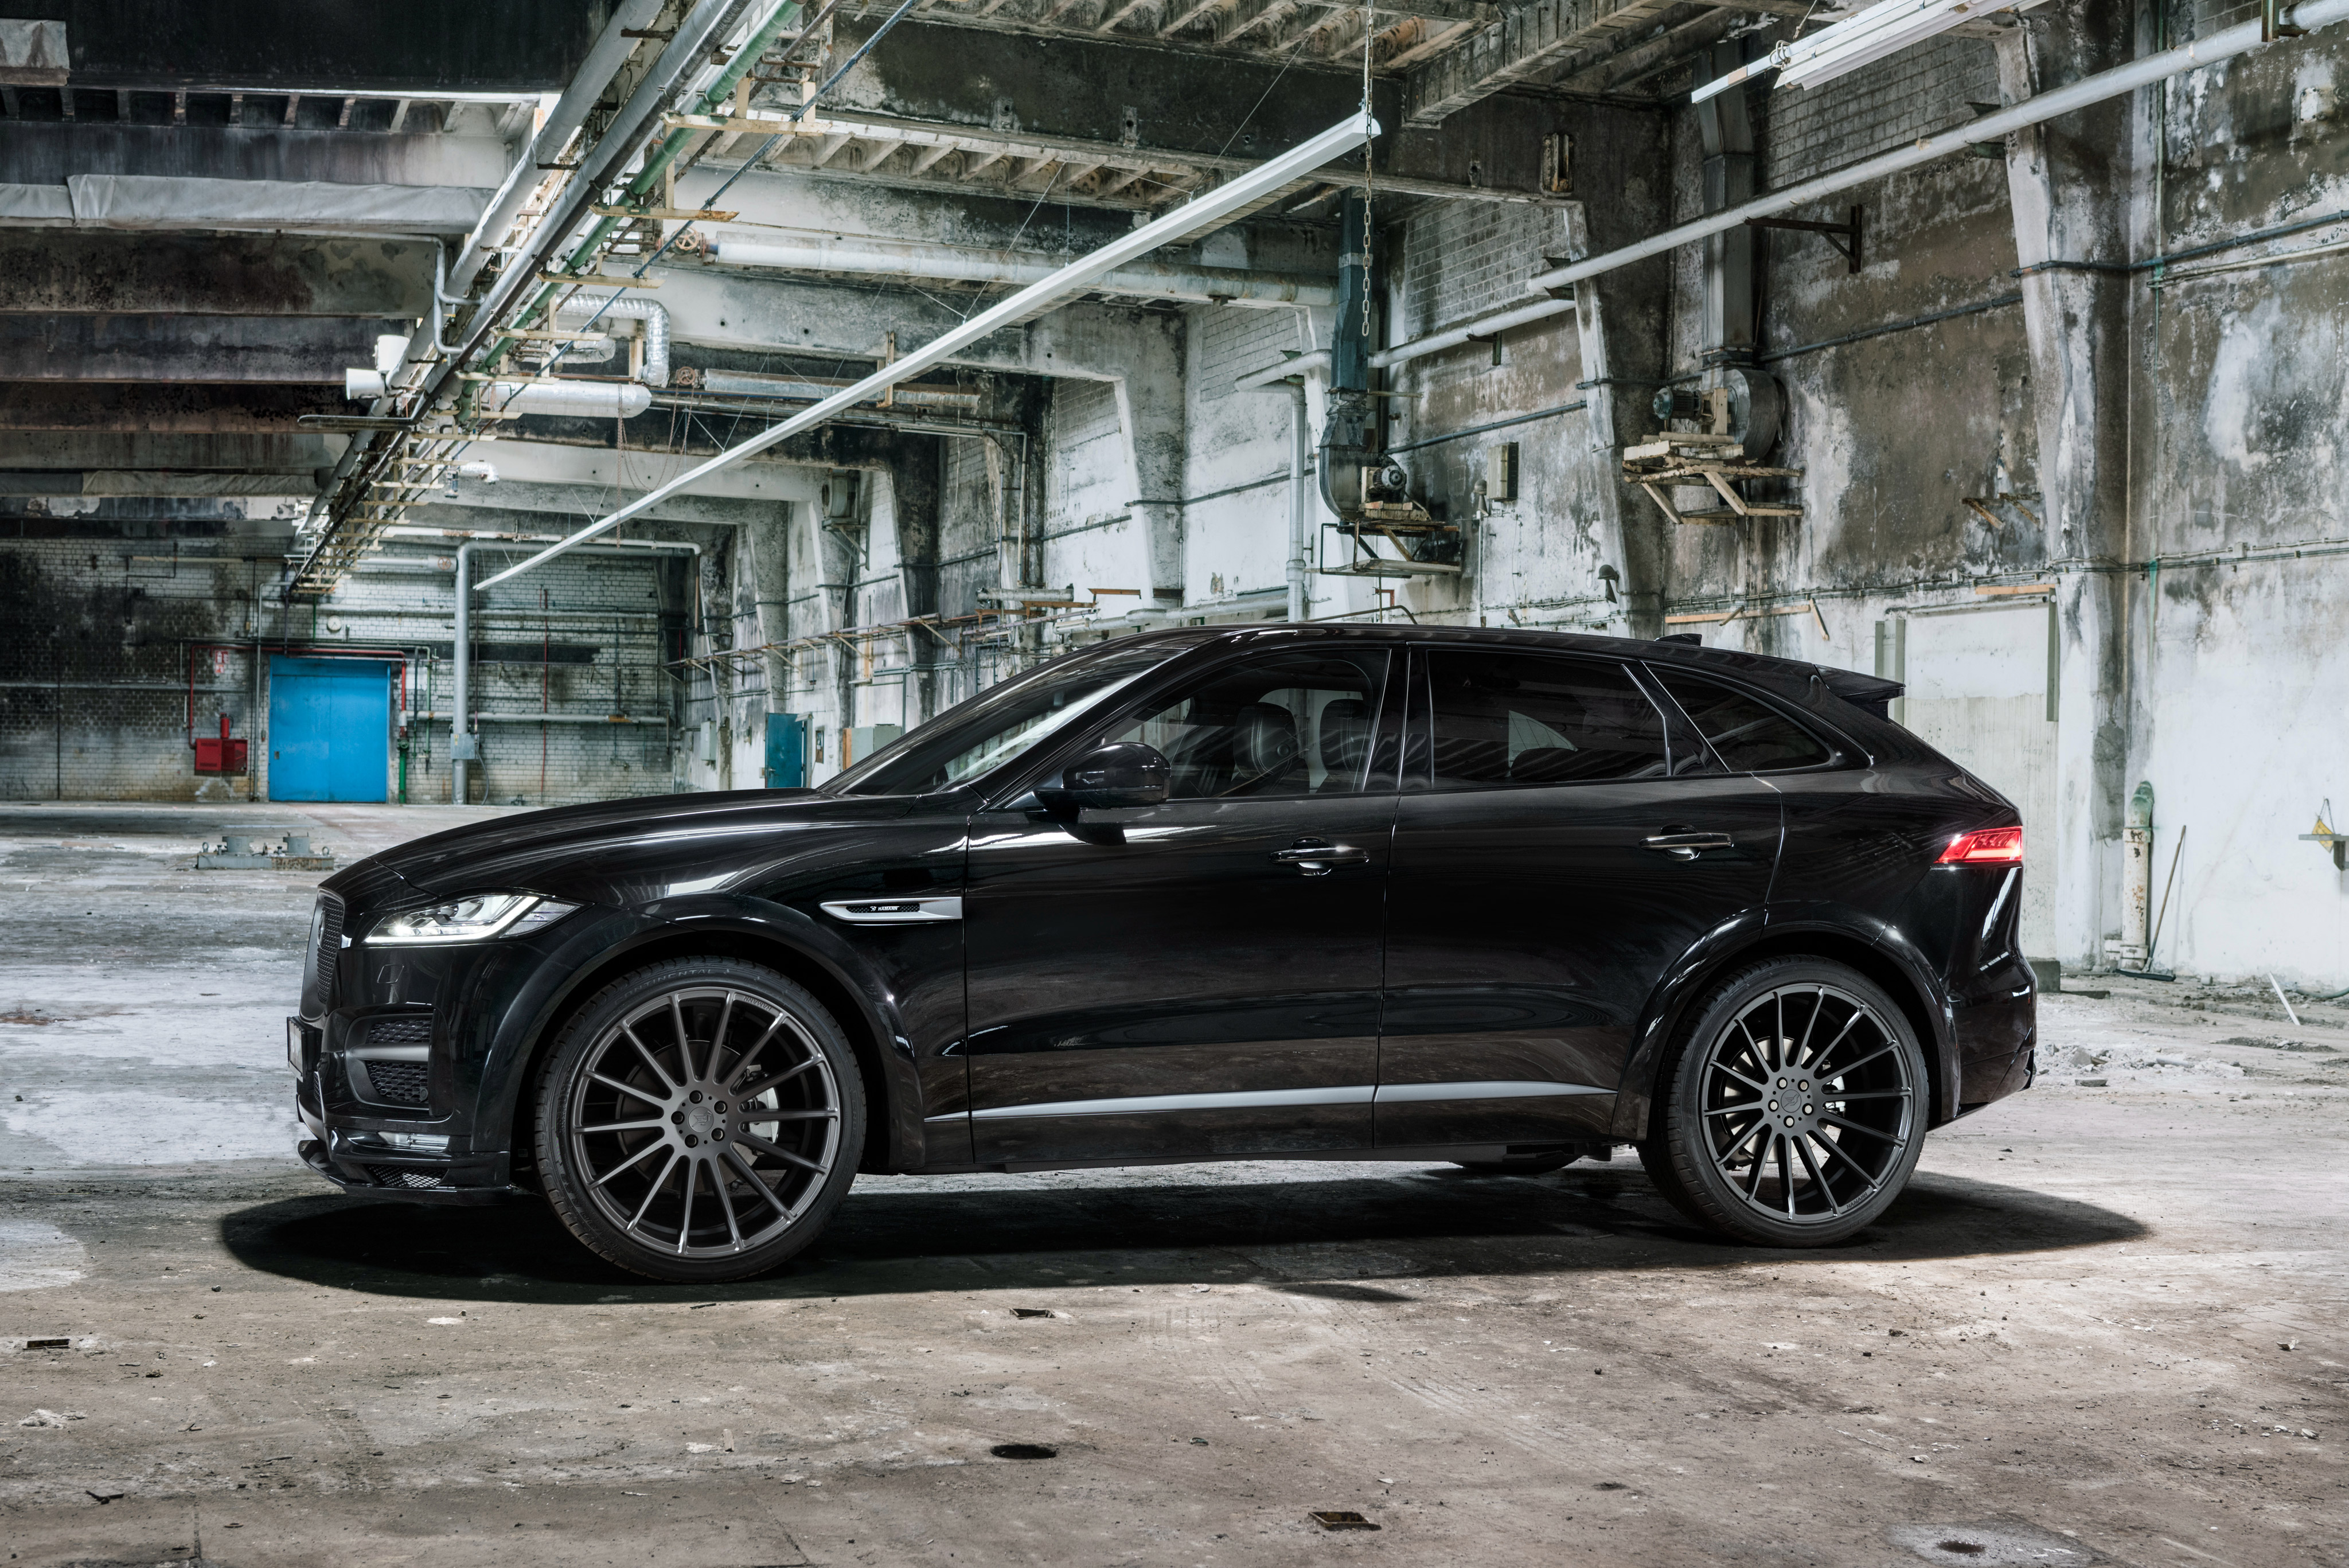 hamann jaguar f pace, hd cars, 4k wallpapers, images, backgrounds